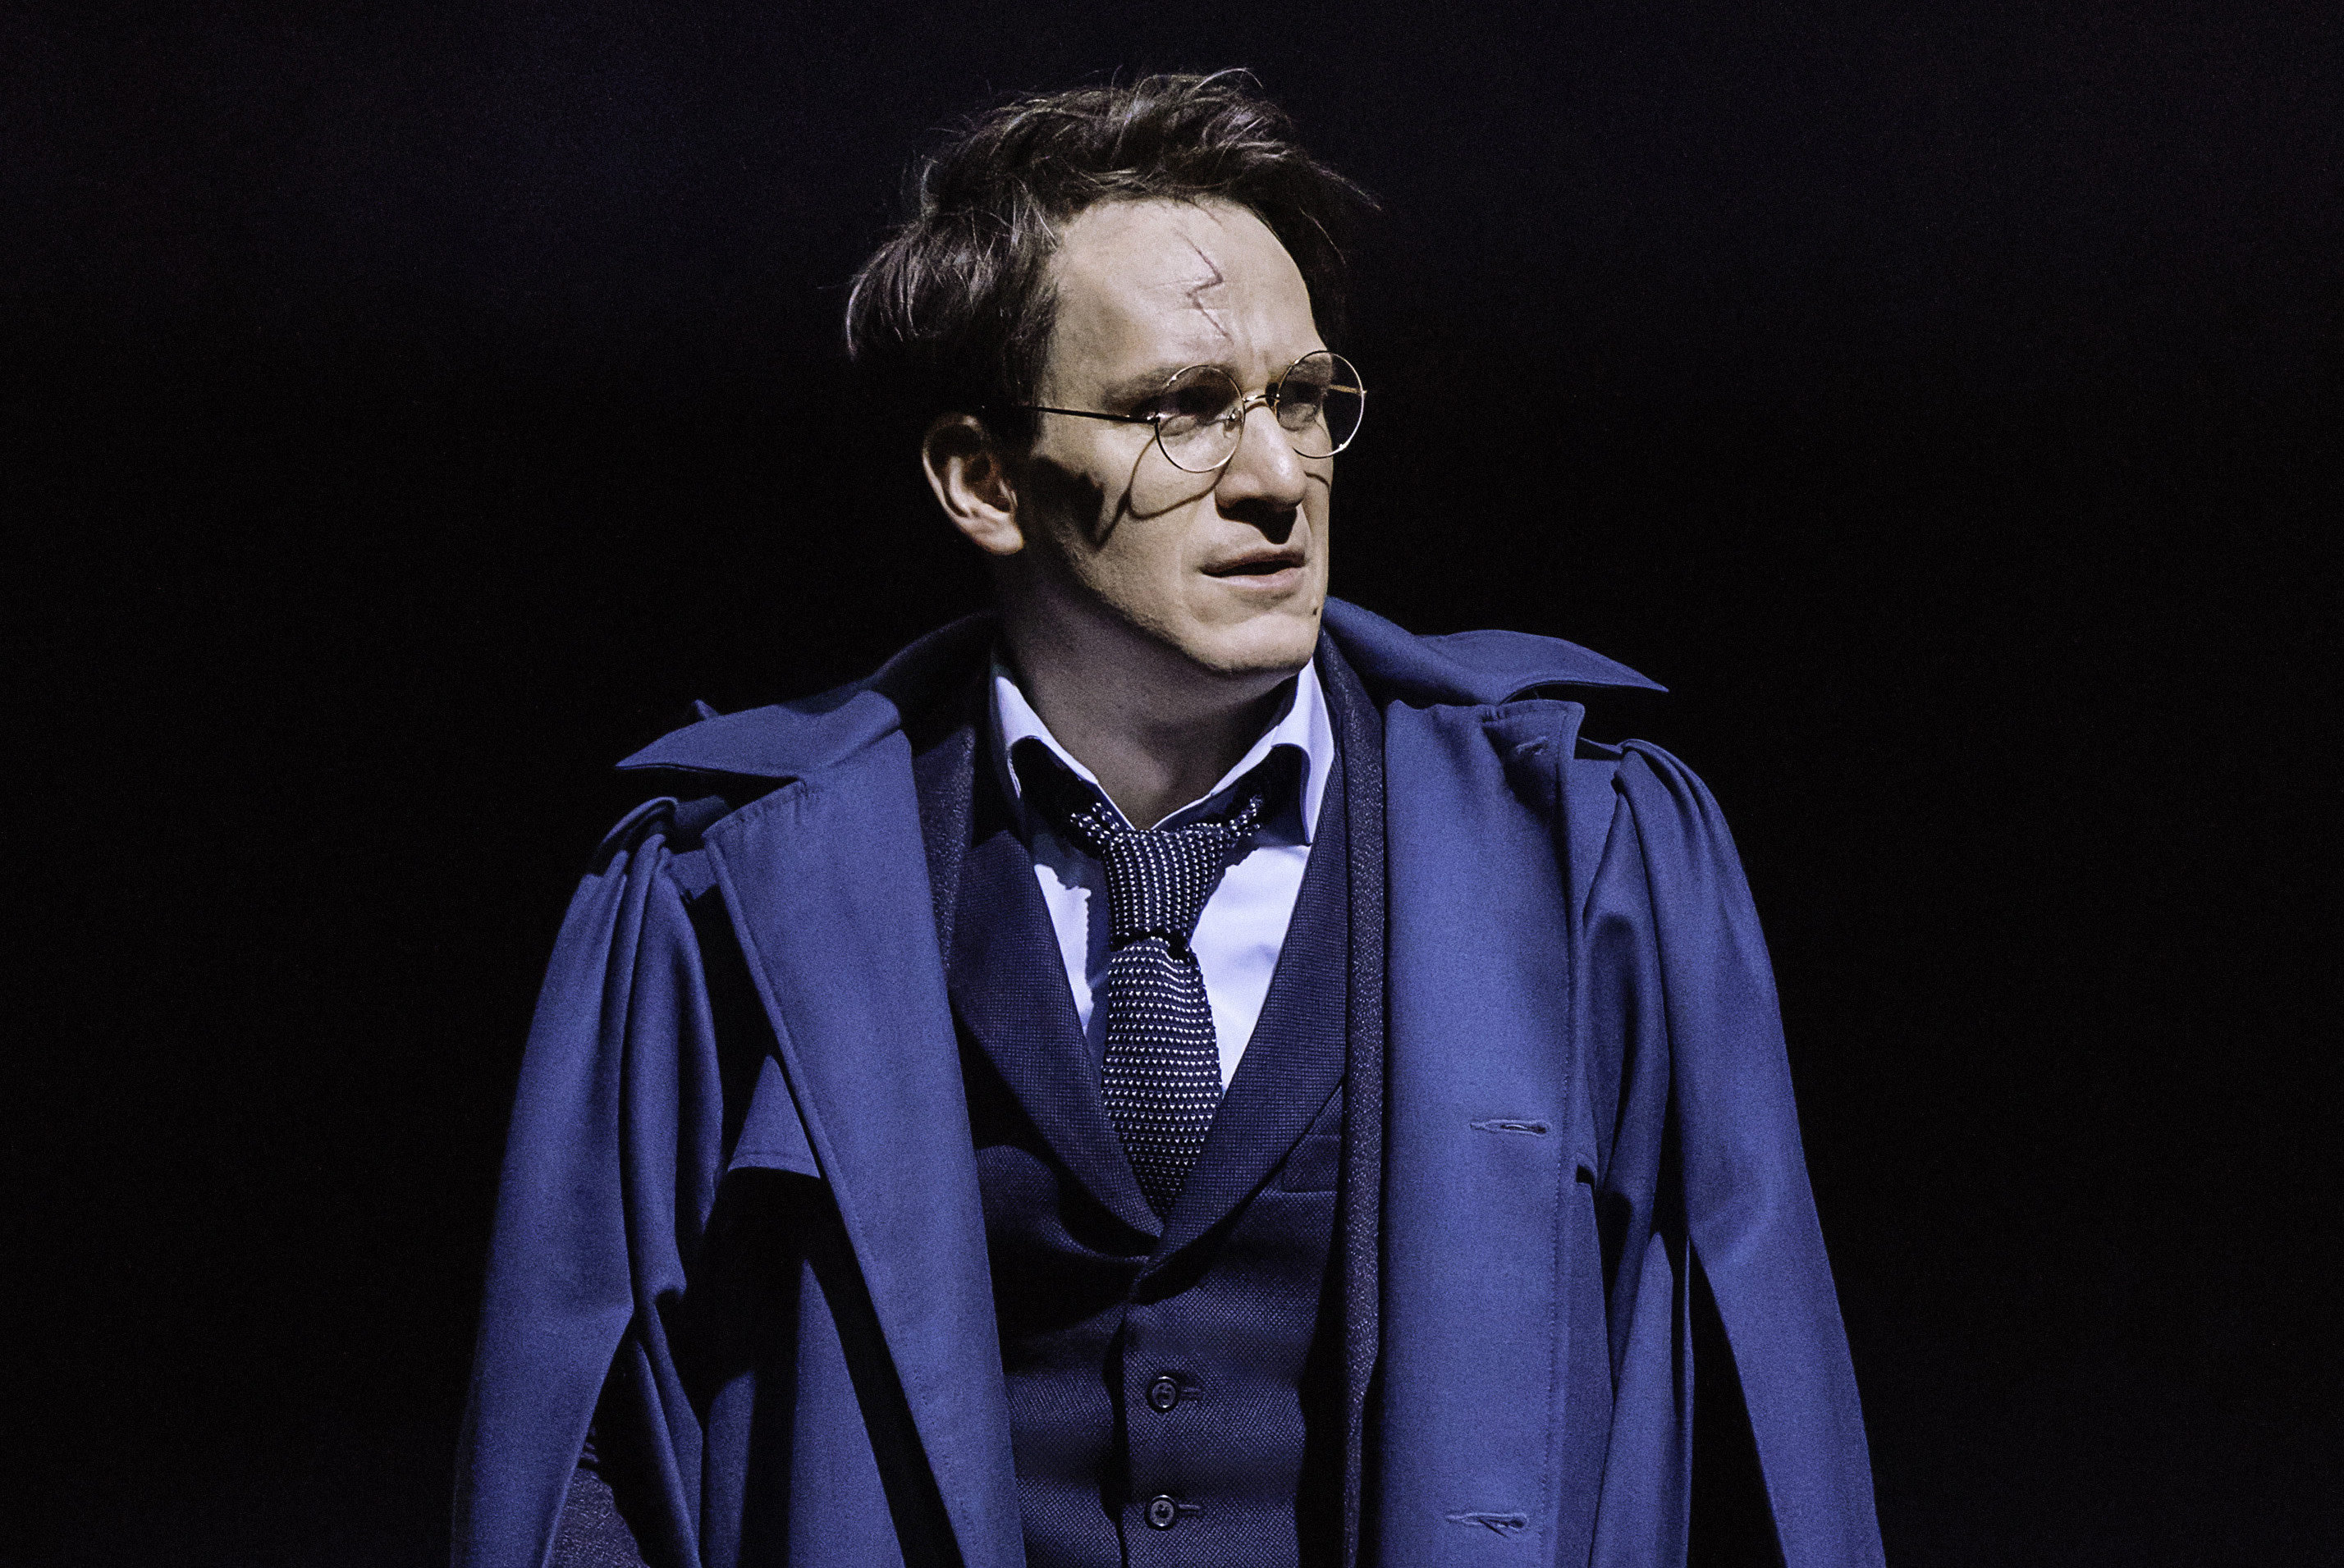 Jamie Parker performing as Harry Potter in Cursed Child on Broadway